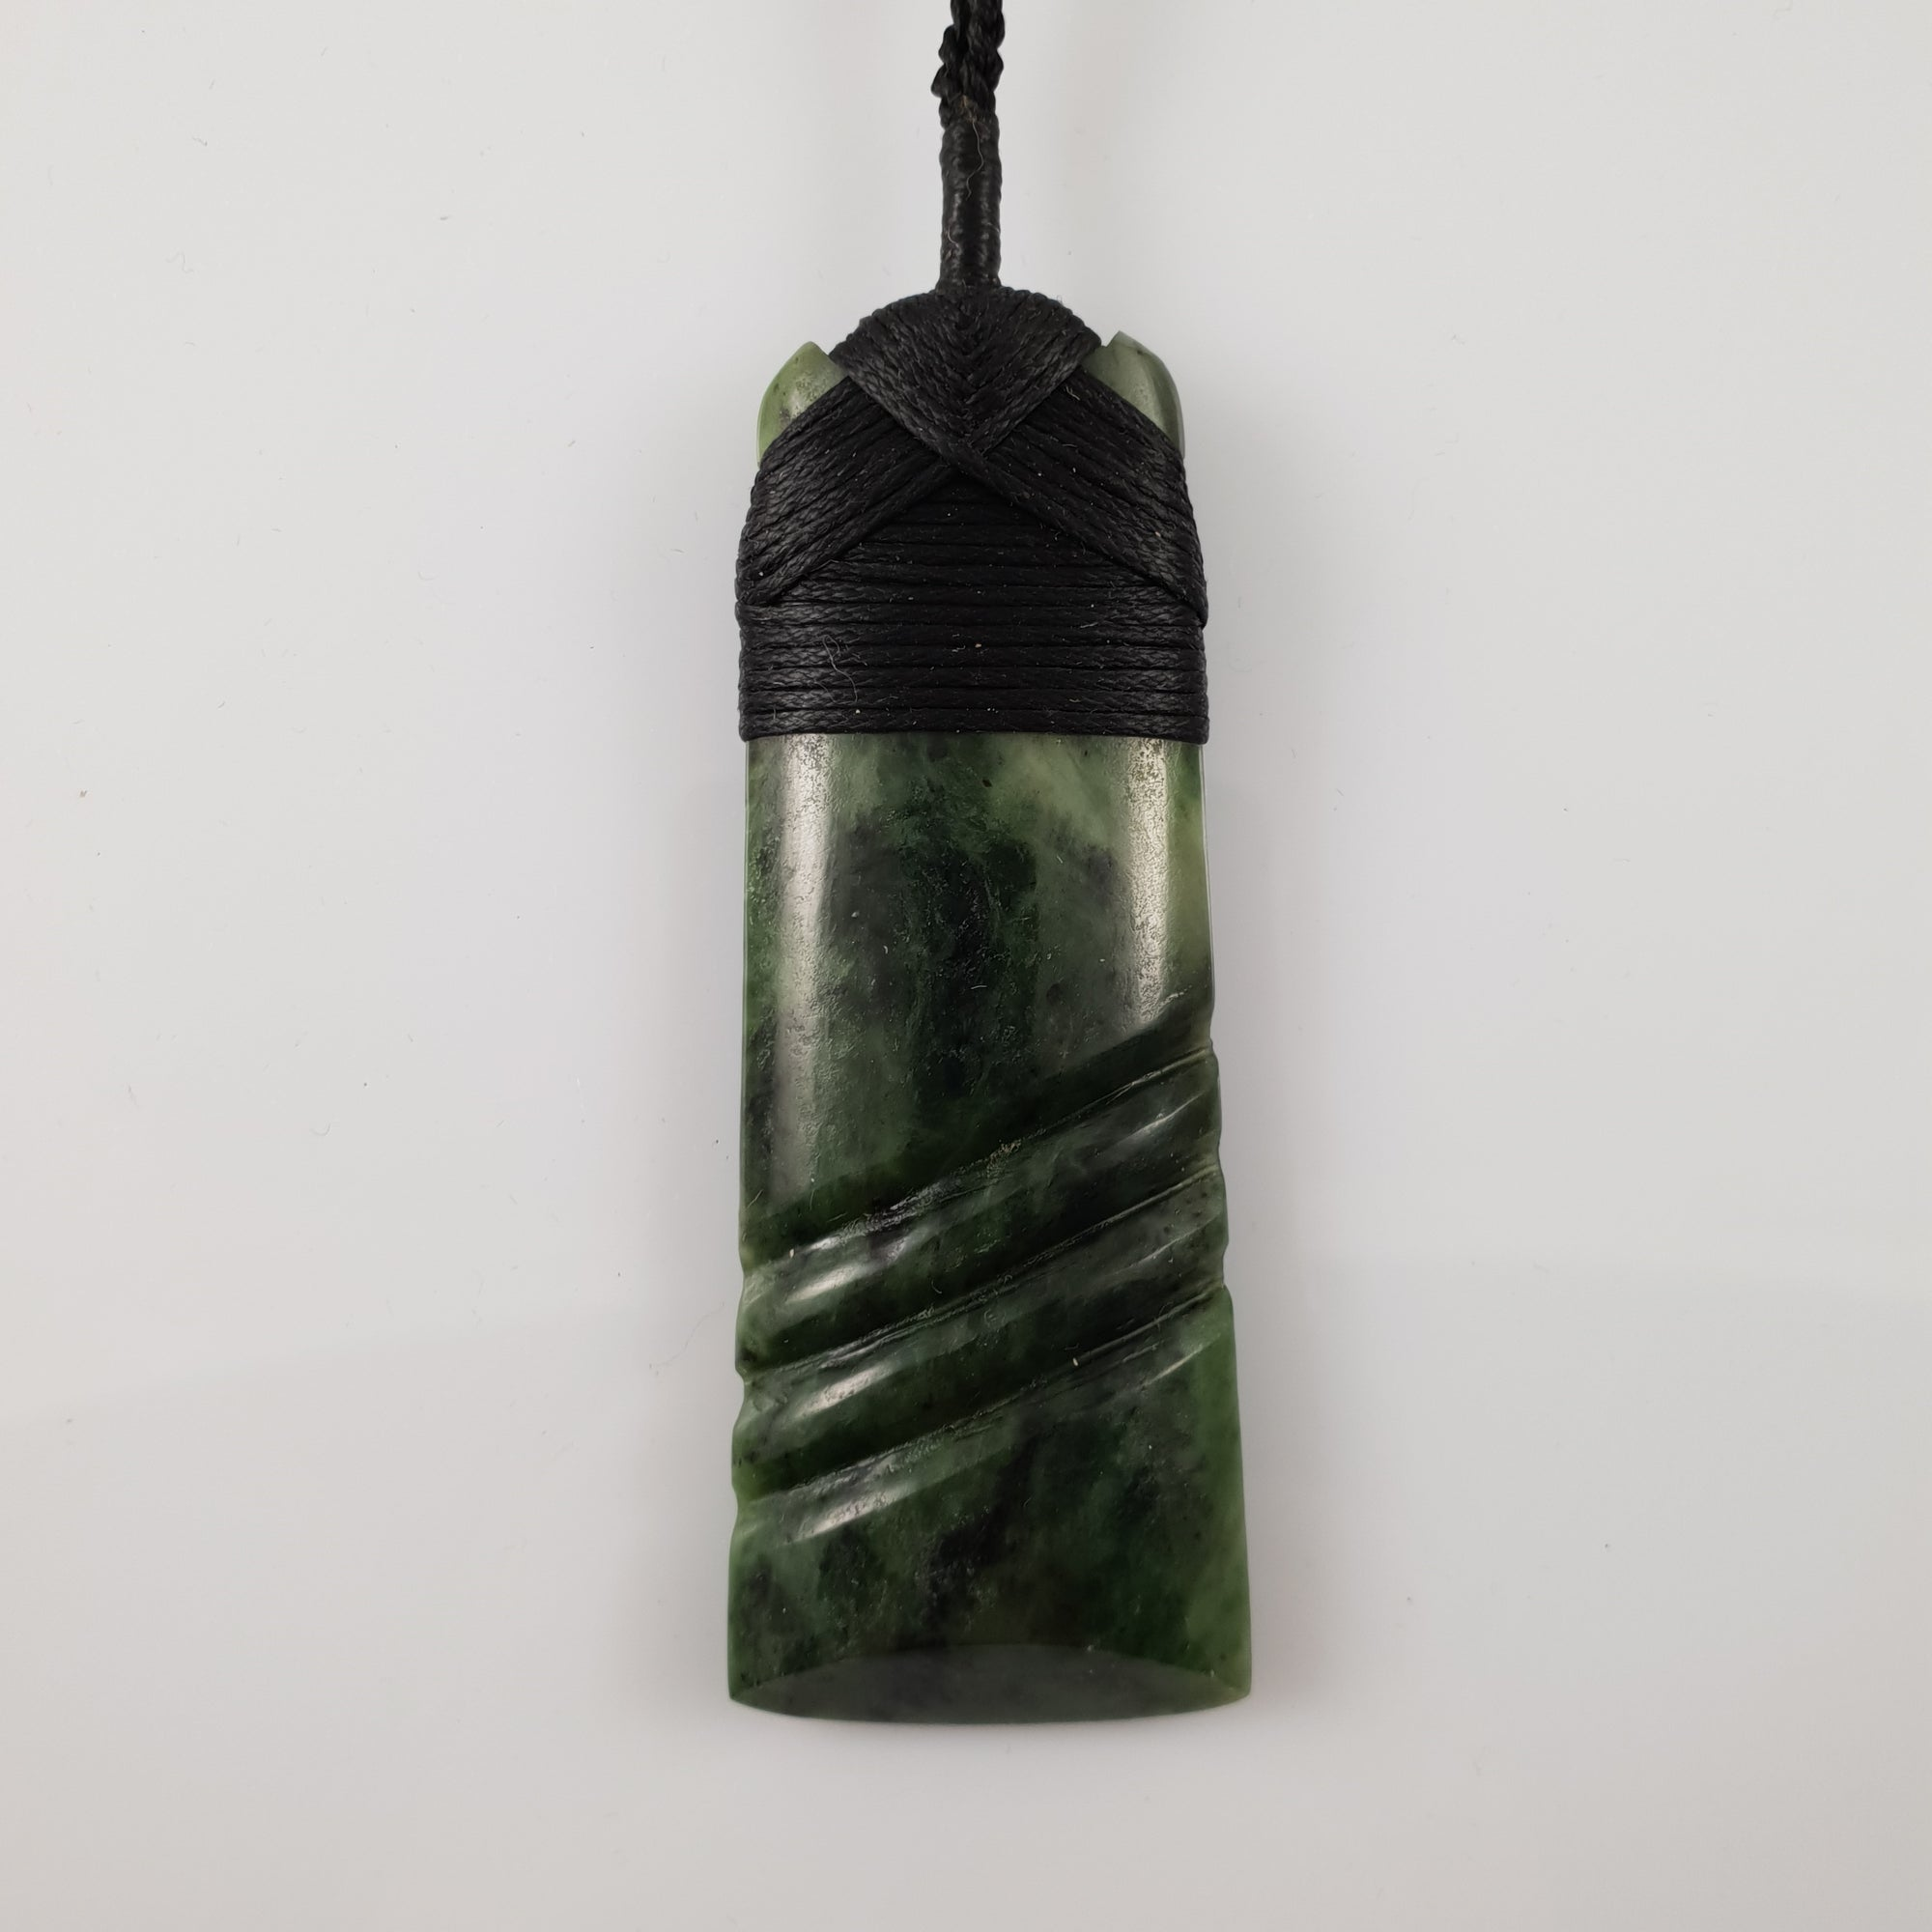 Greenstone Toki Pendant with Carved Detail - Rivendell Shop NZ